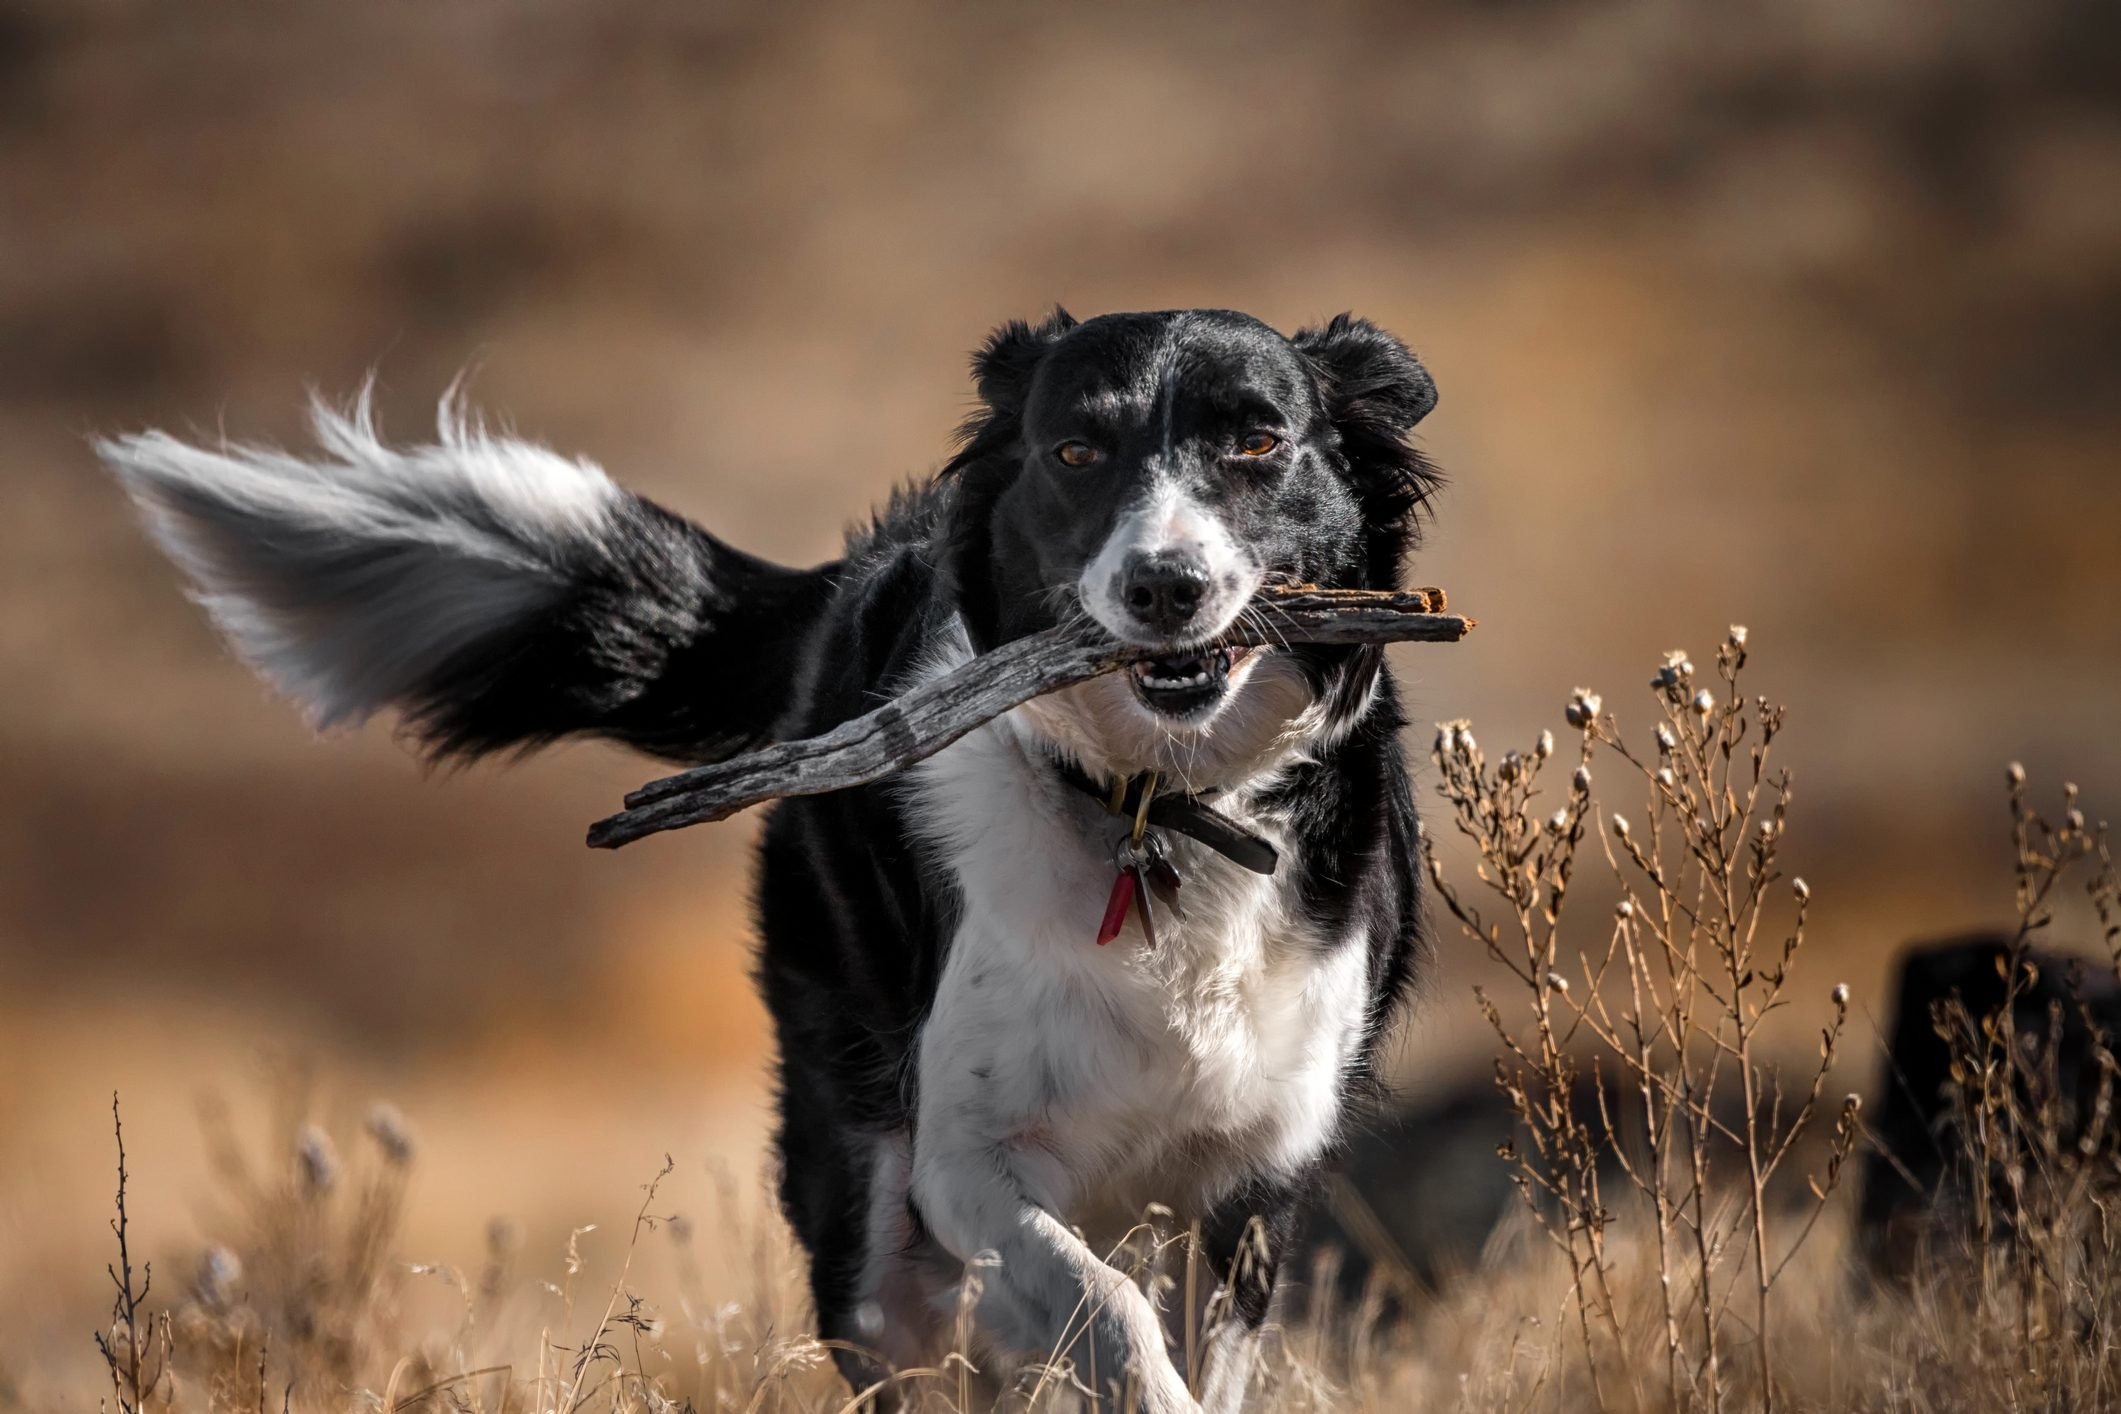 Border Collie walking through brown field with stick